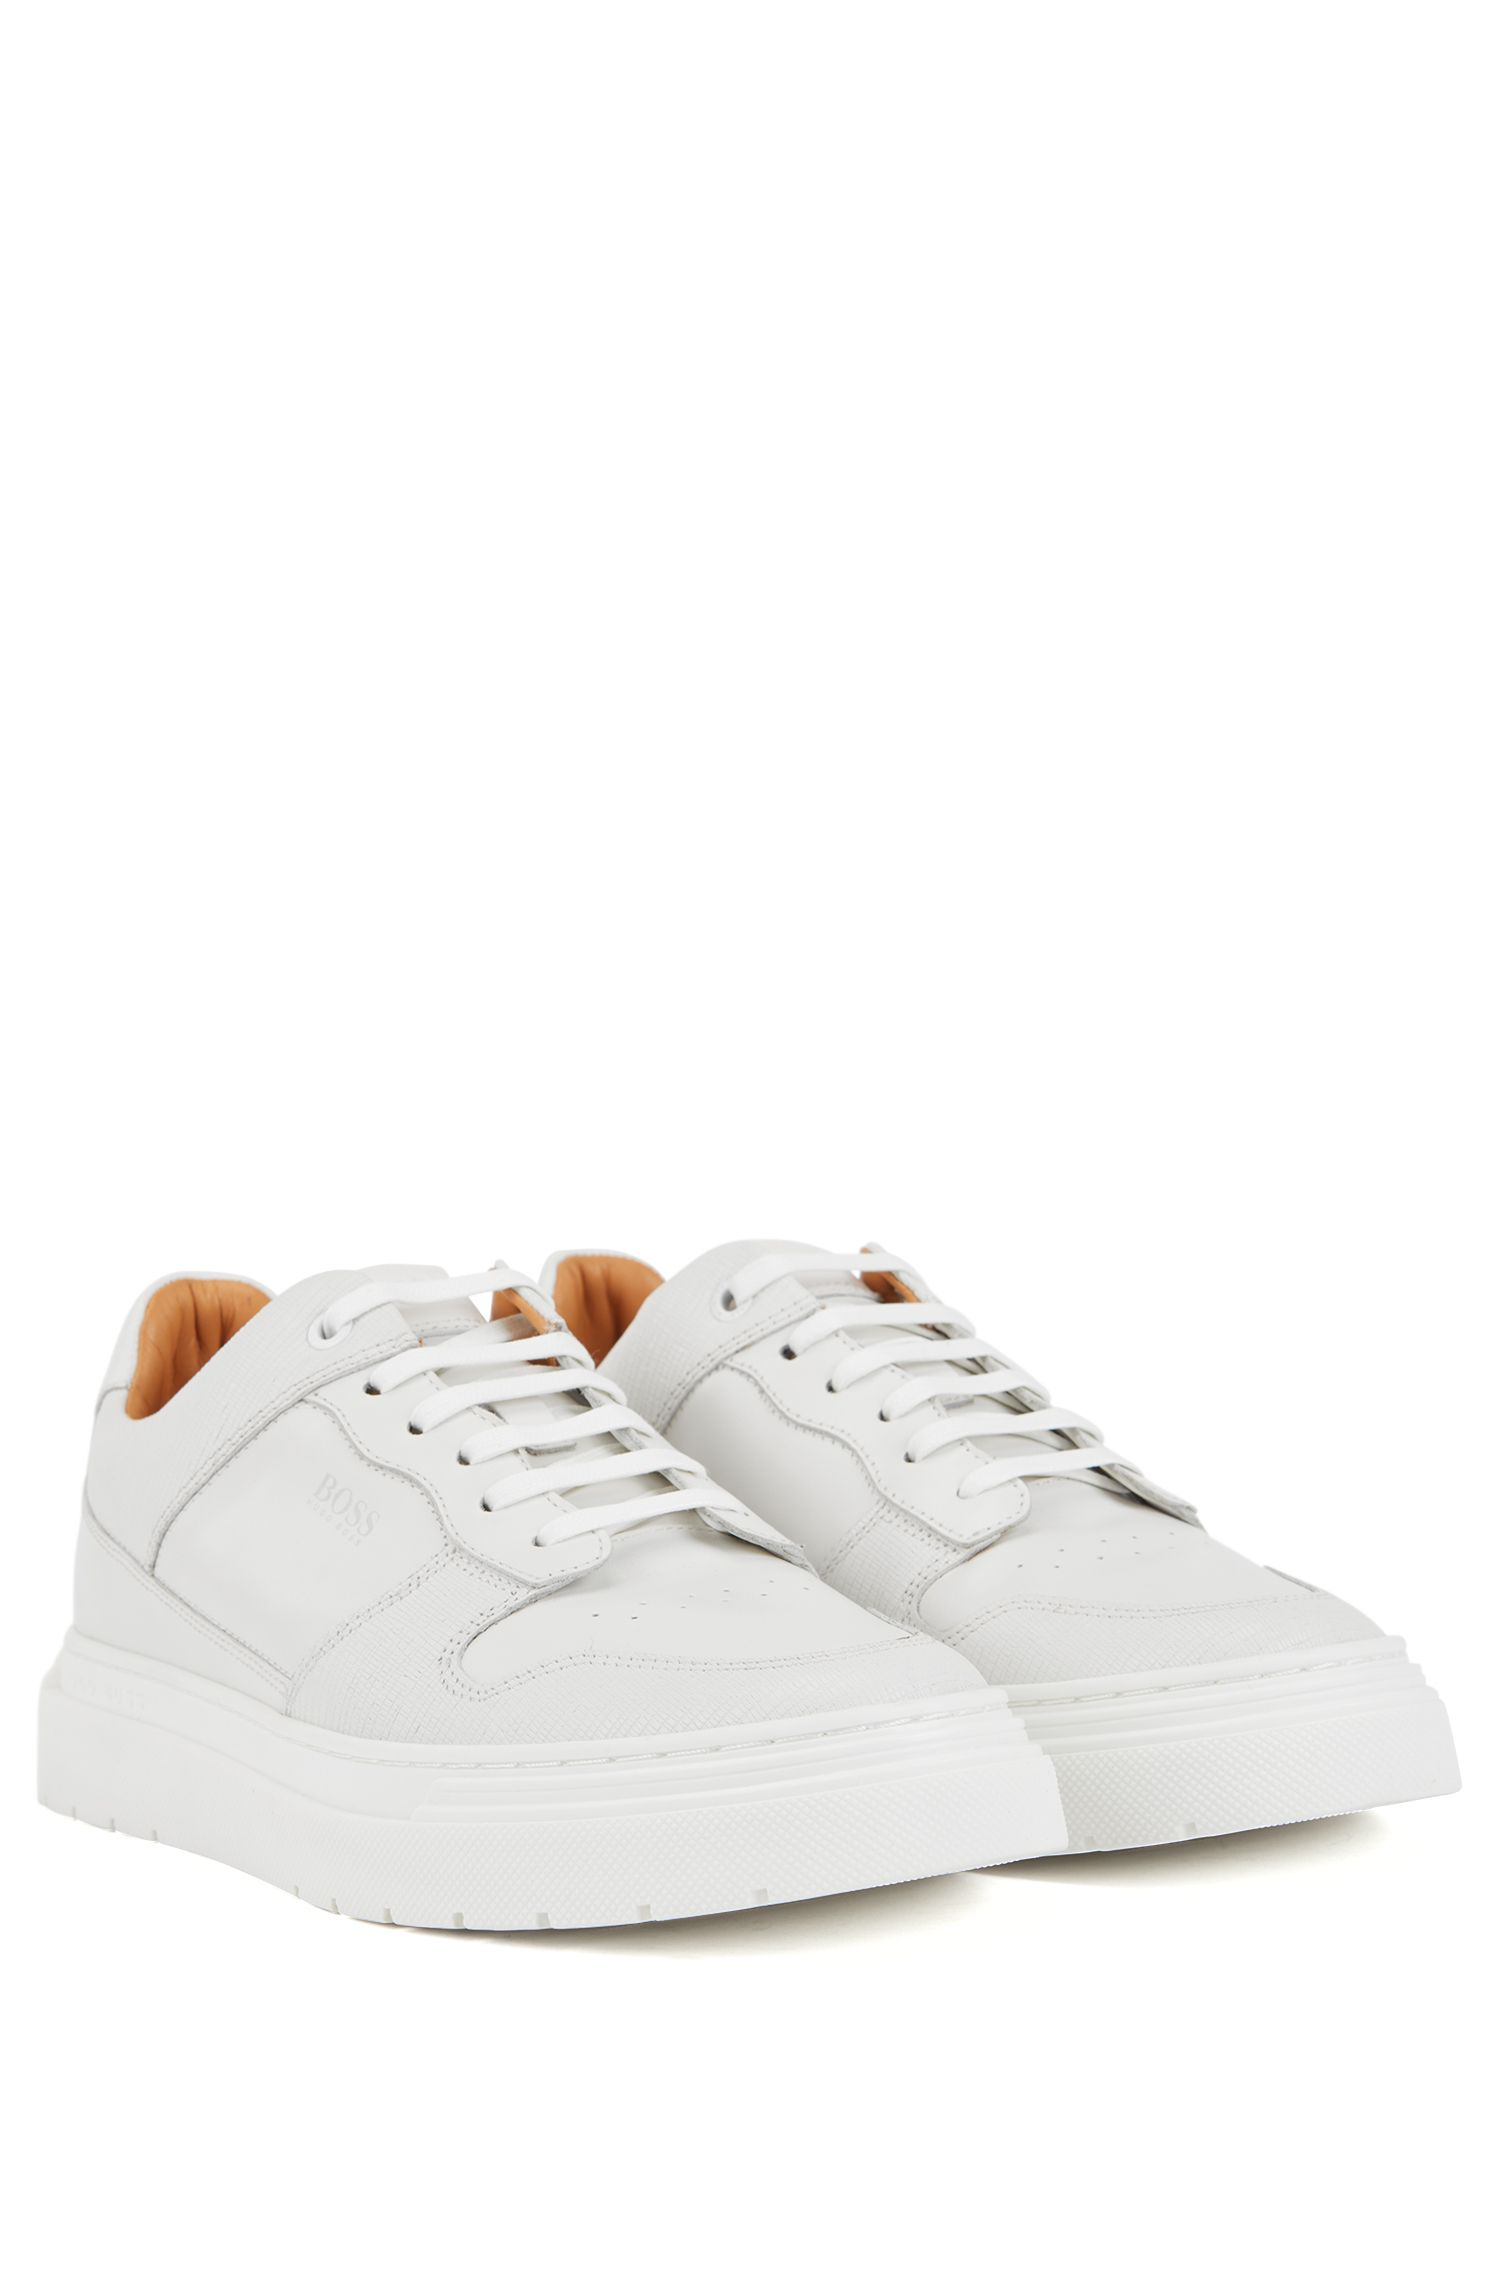 Lace-up trainers in embossed leather, White